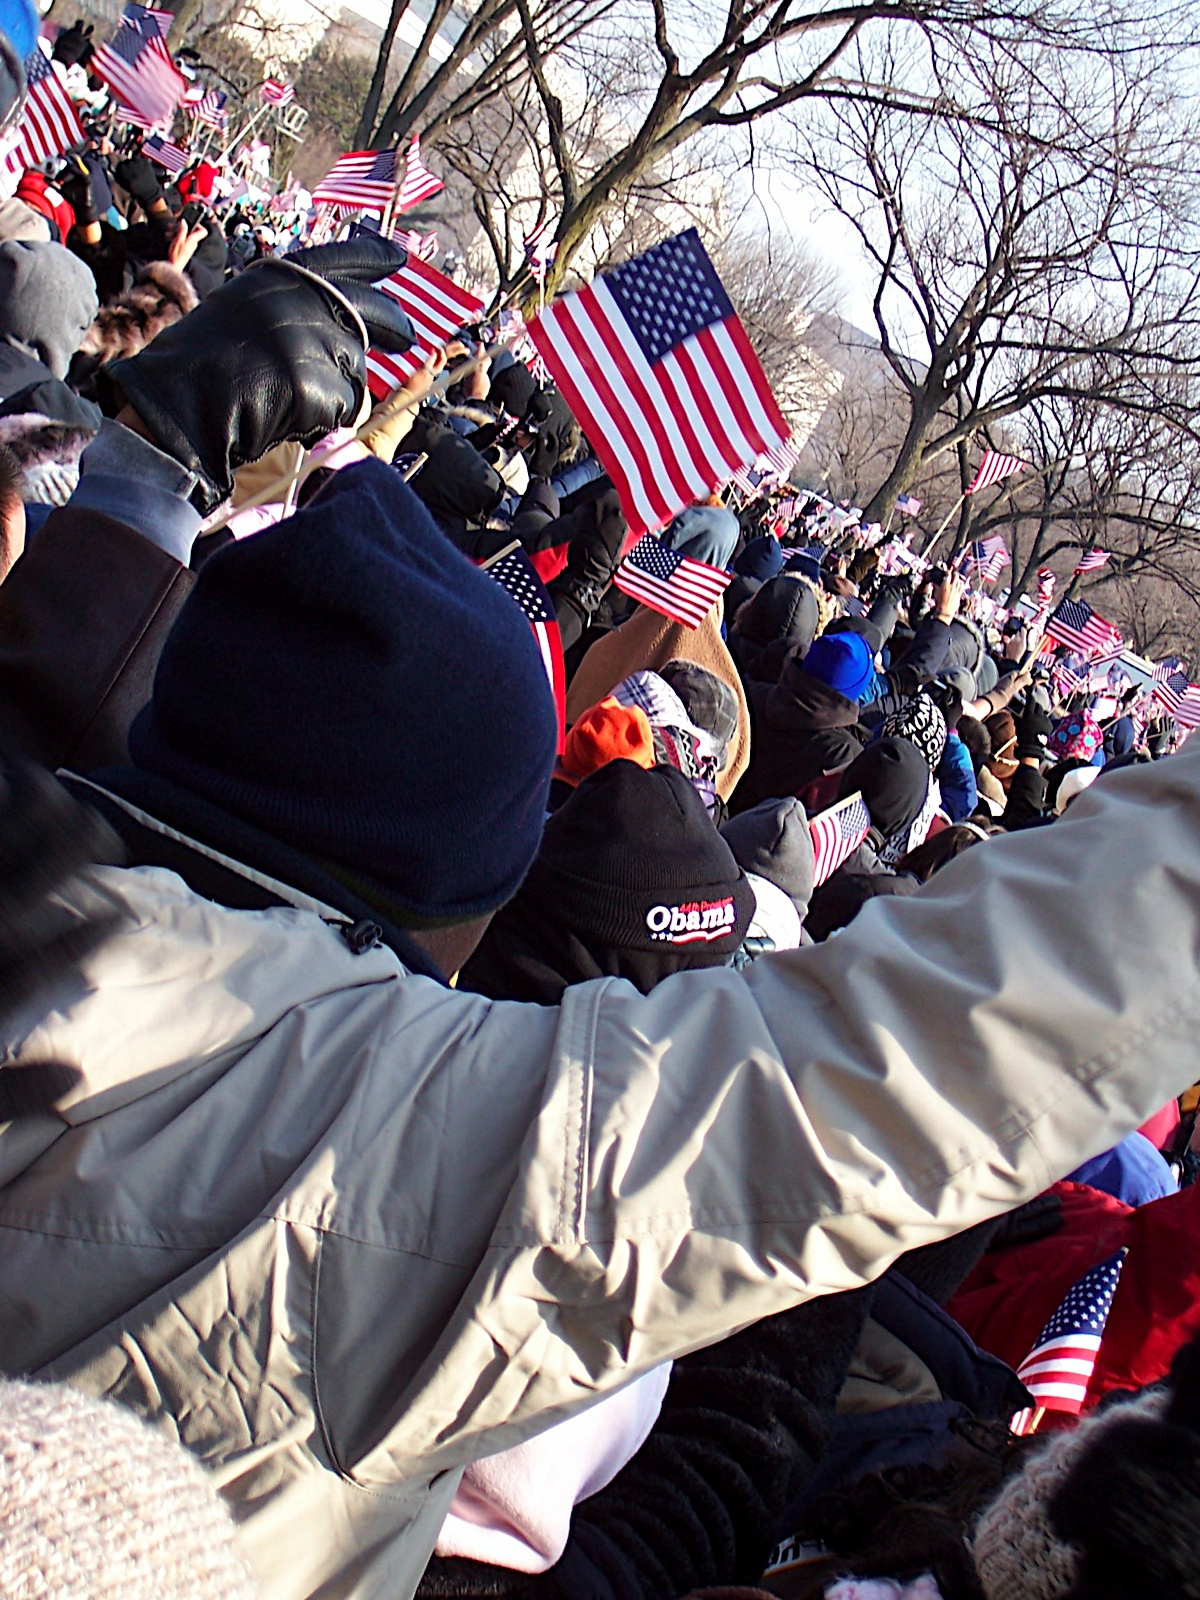 ... and flag-waving, patriotic joy erupts along the Mall.